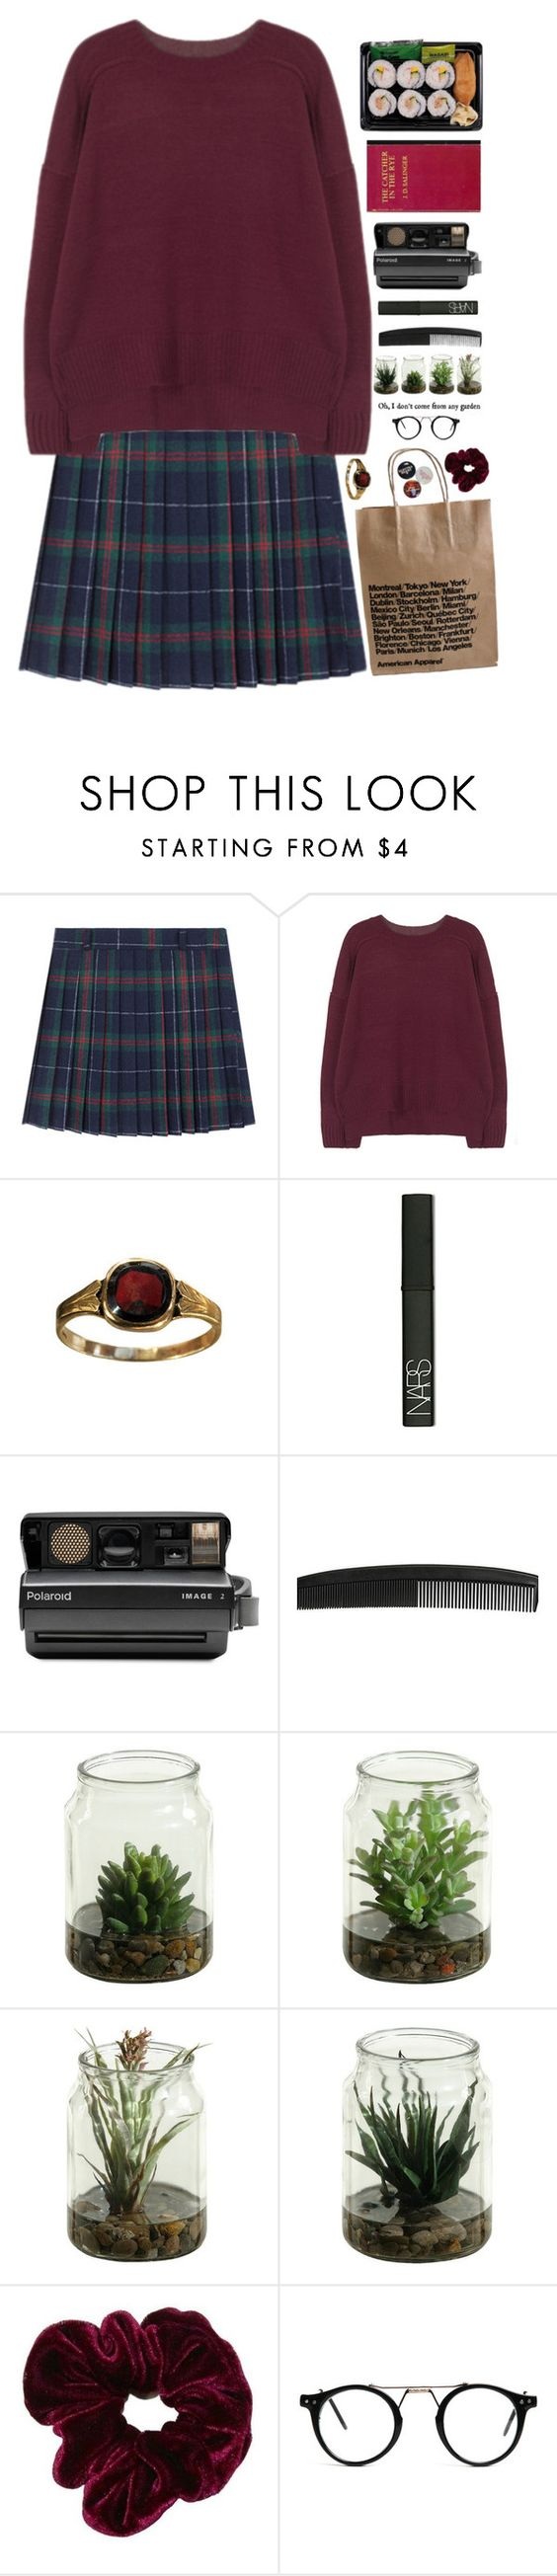 """Lauren"" by littlerubygirl ❤ liked on Polyvore featuring NARS Cosmetics, Polaroid, women's clothing, women, female, woman, misses and juniors"